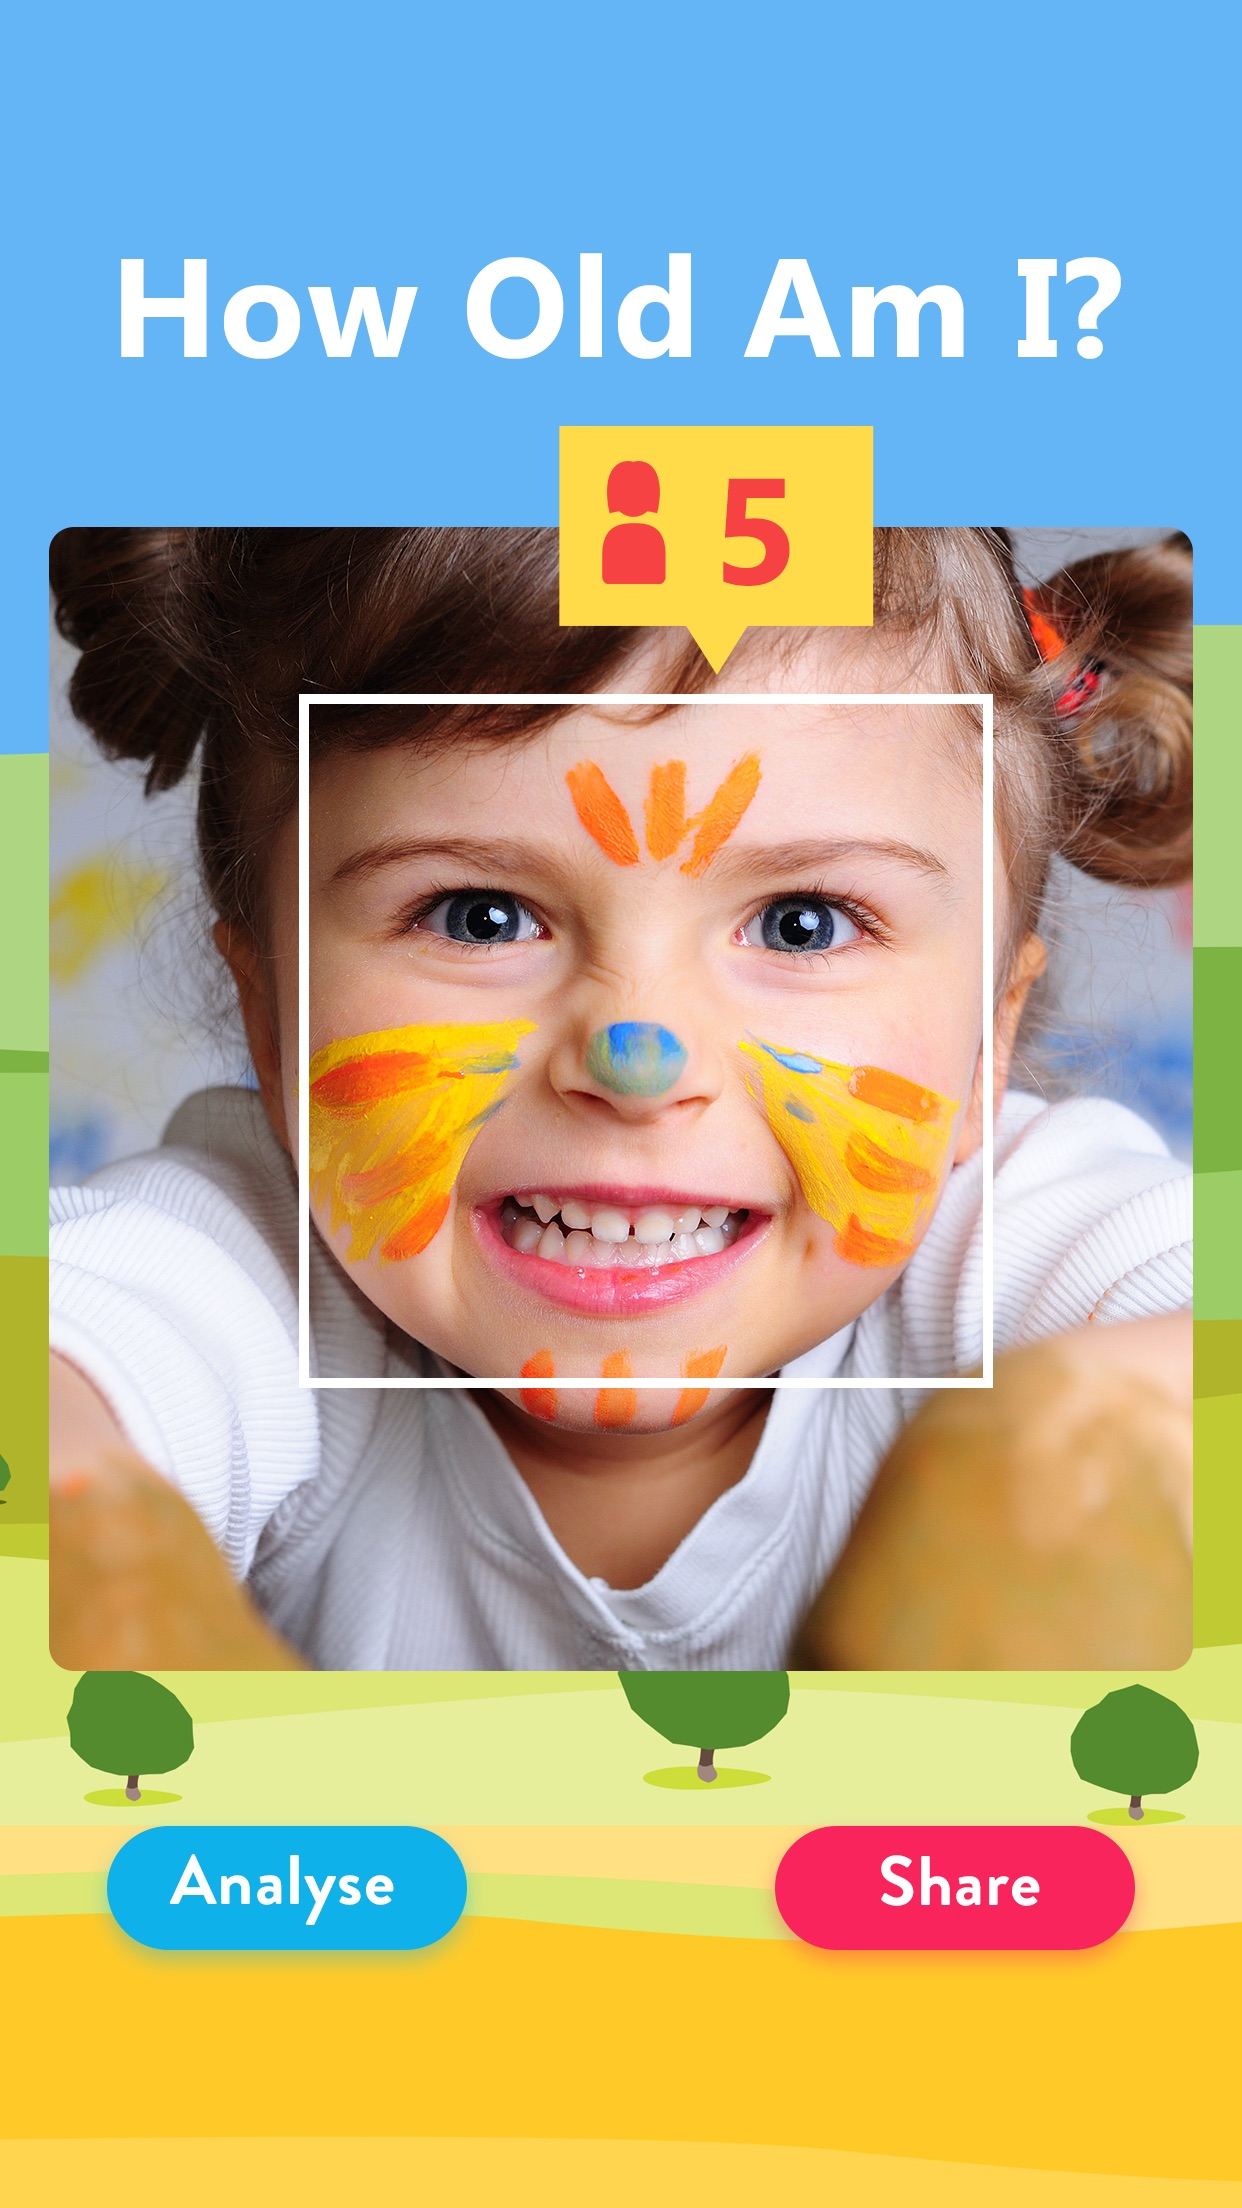 What Would Our Baby Look Like - Cool game to guess likeness by face photo Screenshot